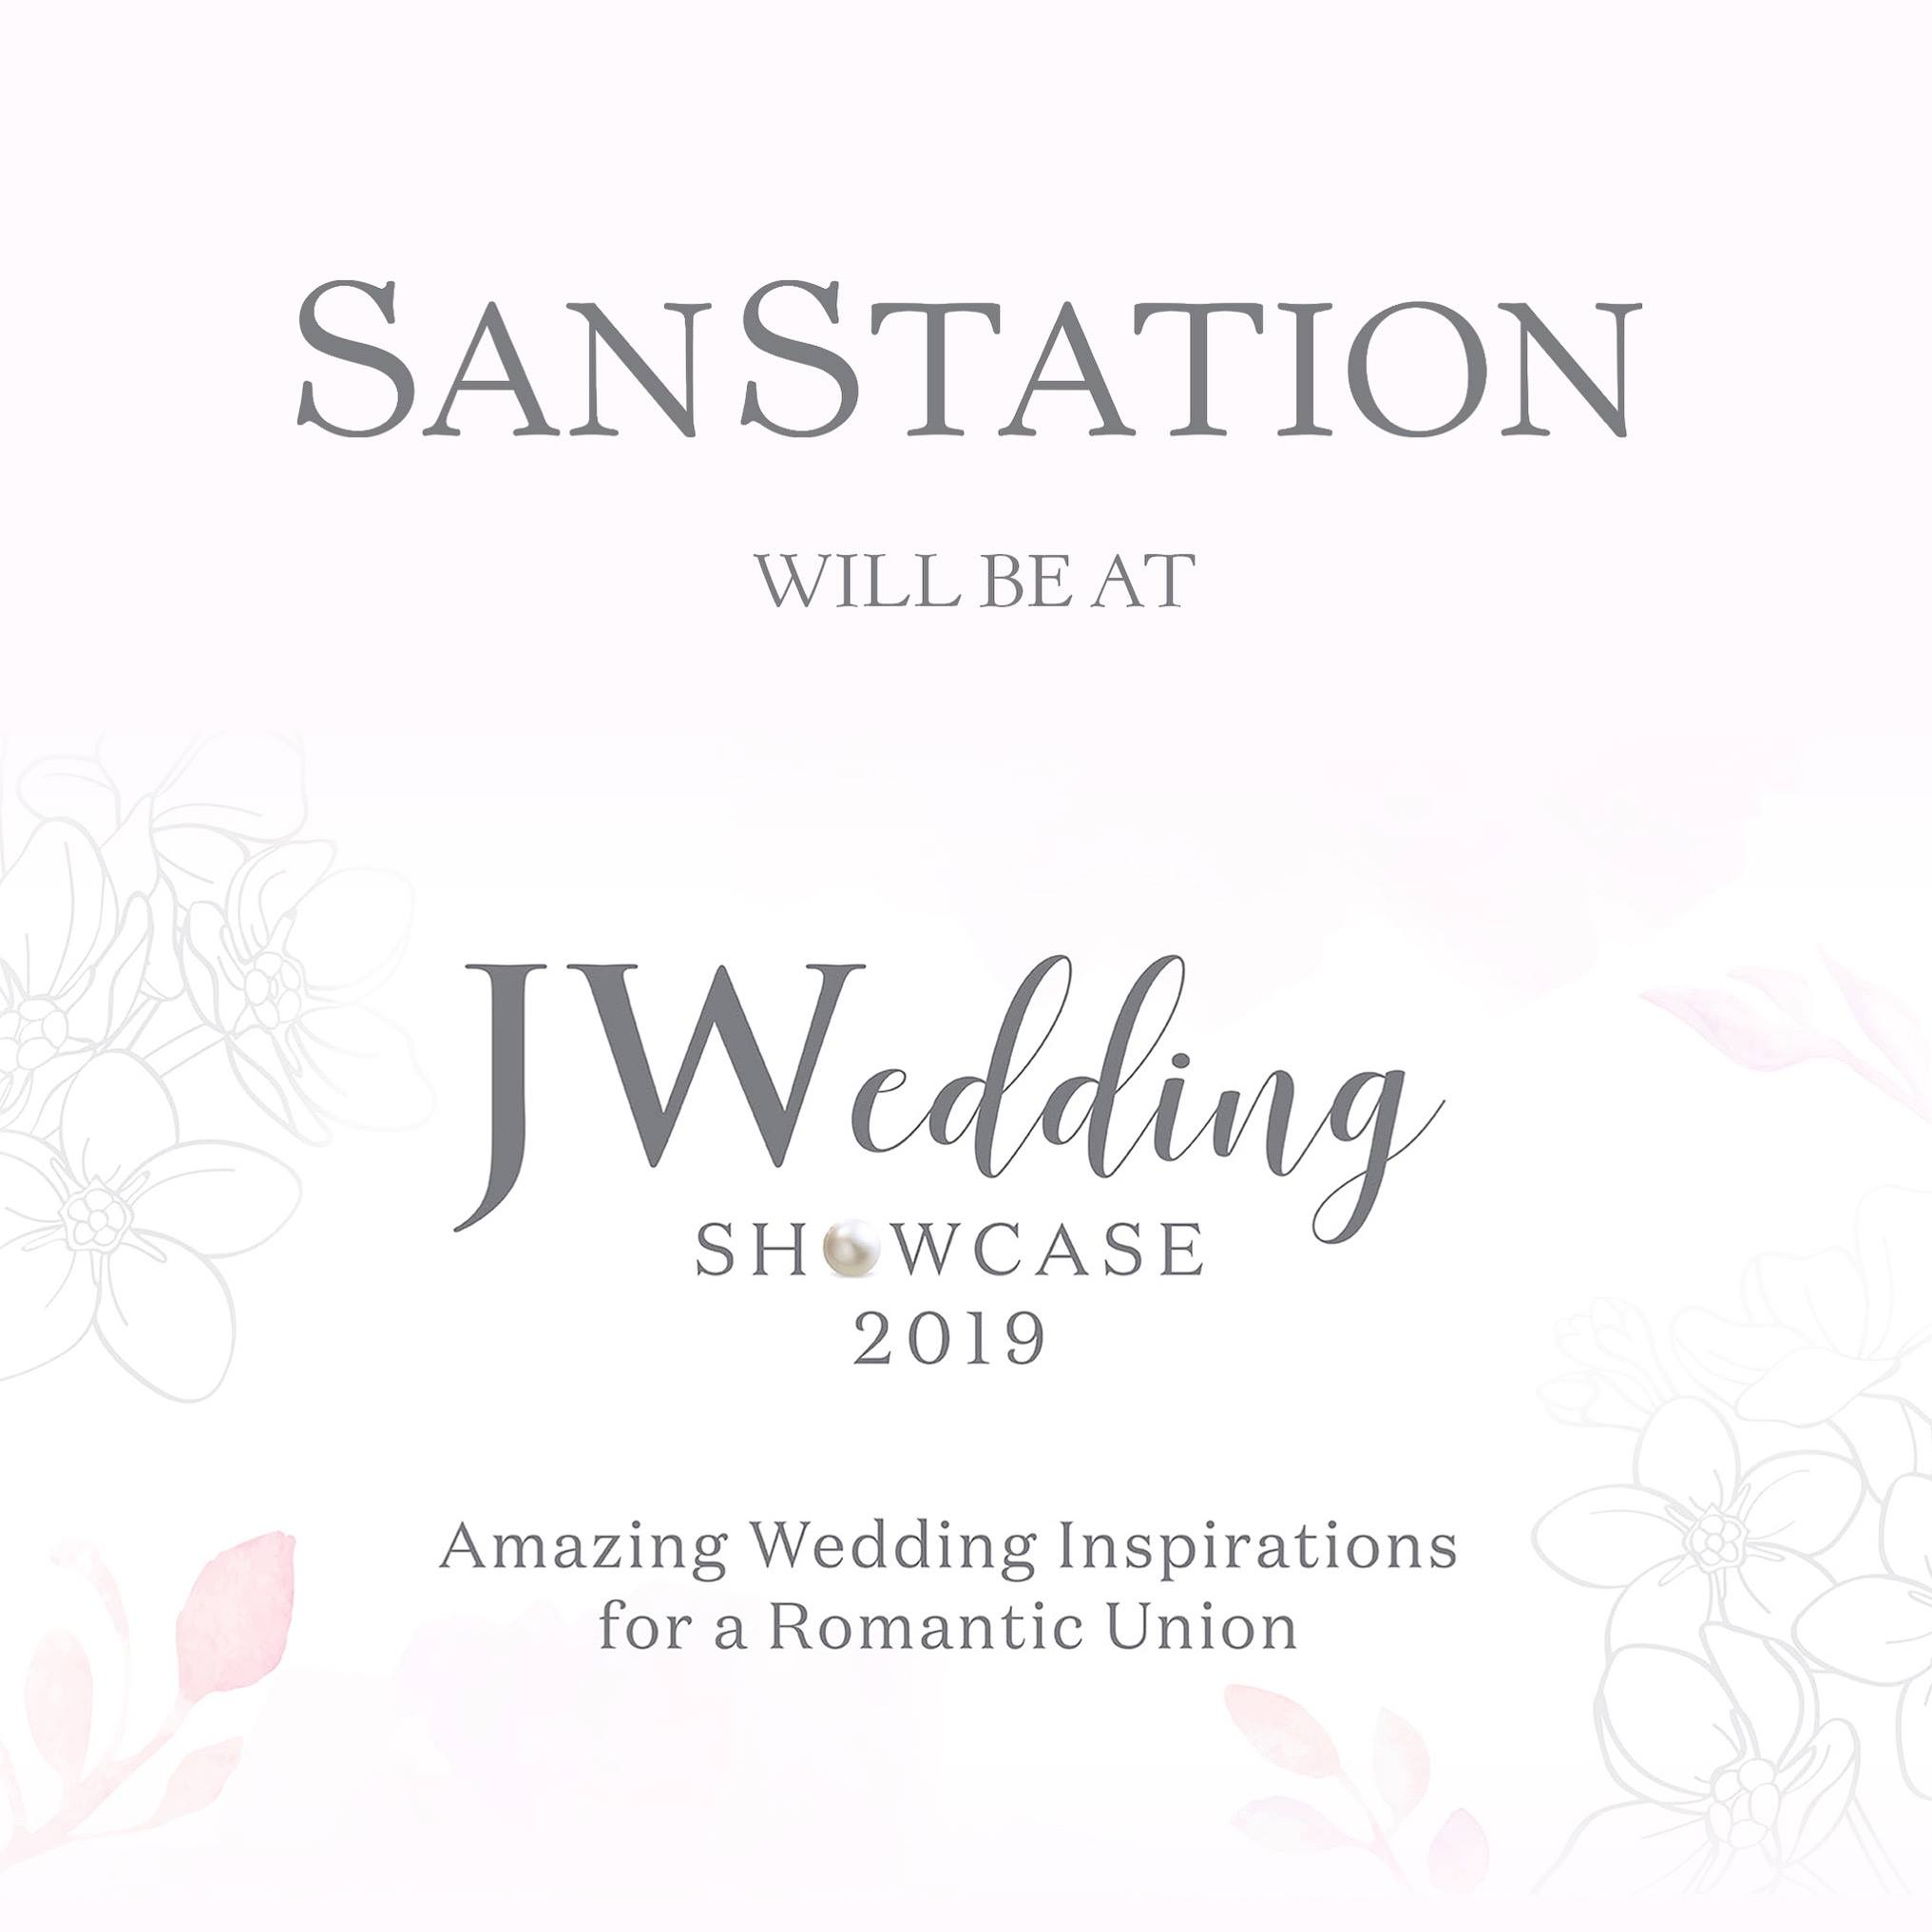 Luxury Wedding Showcase at JW Marriott Hotel Hong Kong